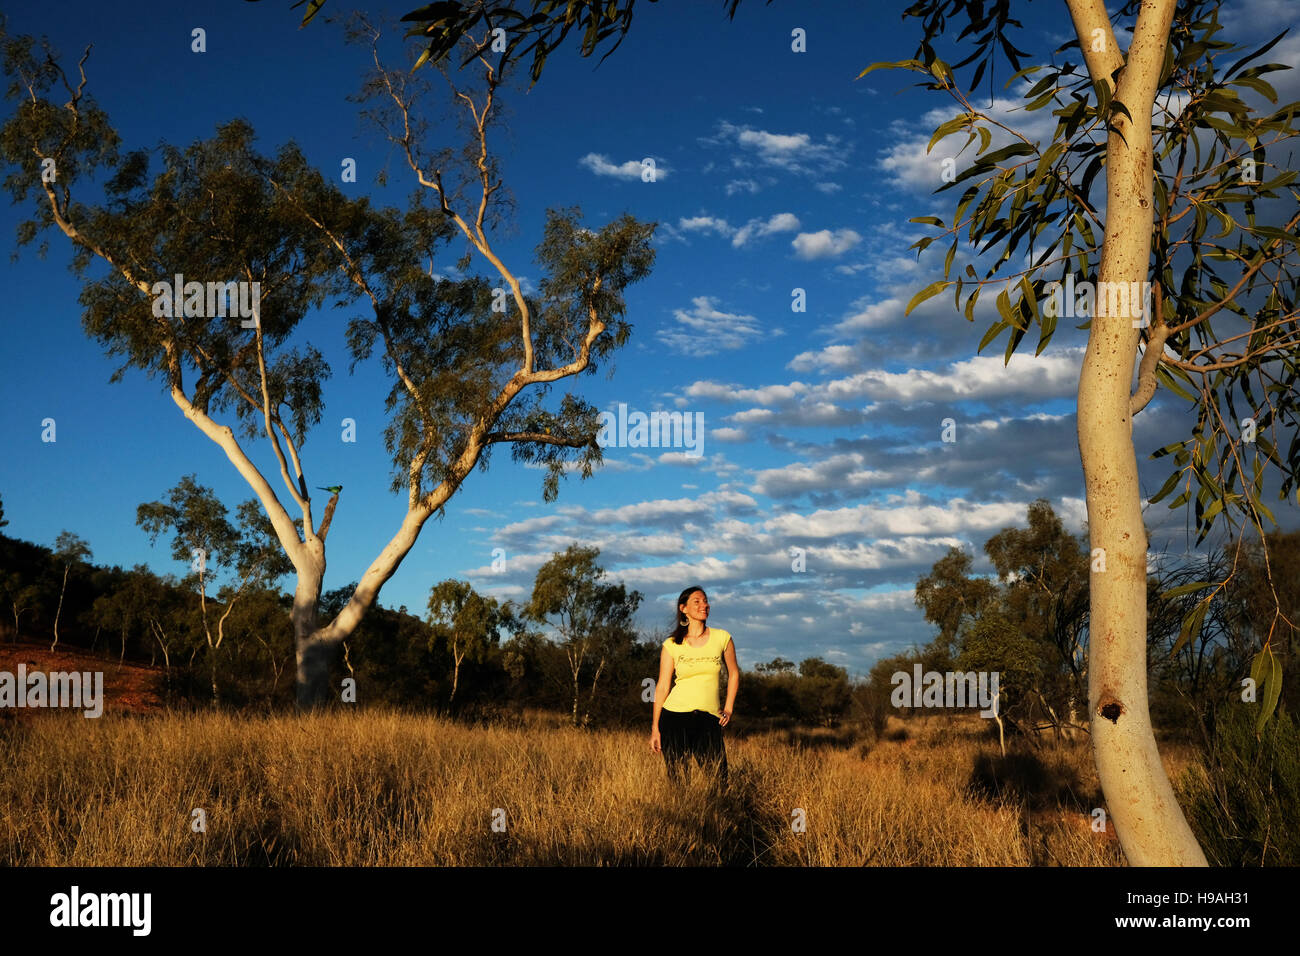 A woman is surrounded by gum trees in Alice Springs, the MacDonnell Ranges, Northern Territory, Central Australia - Stock Image